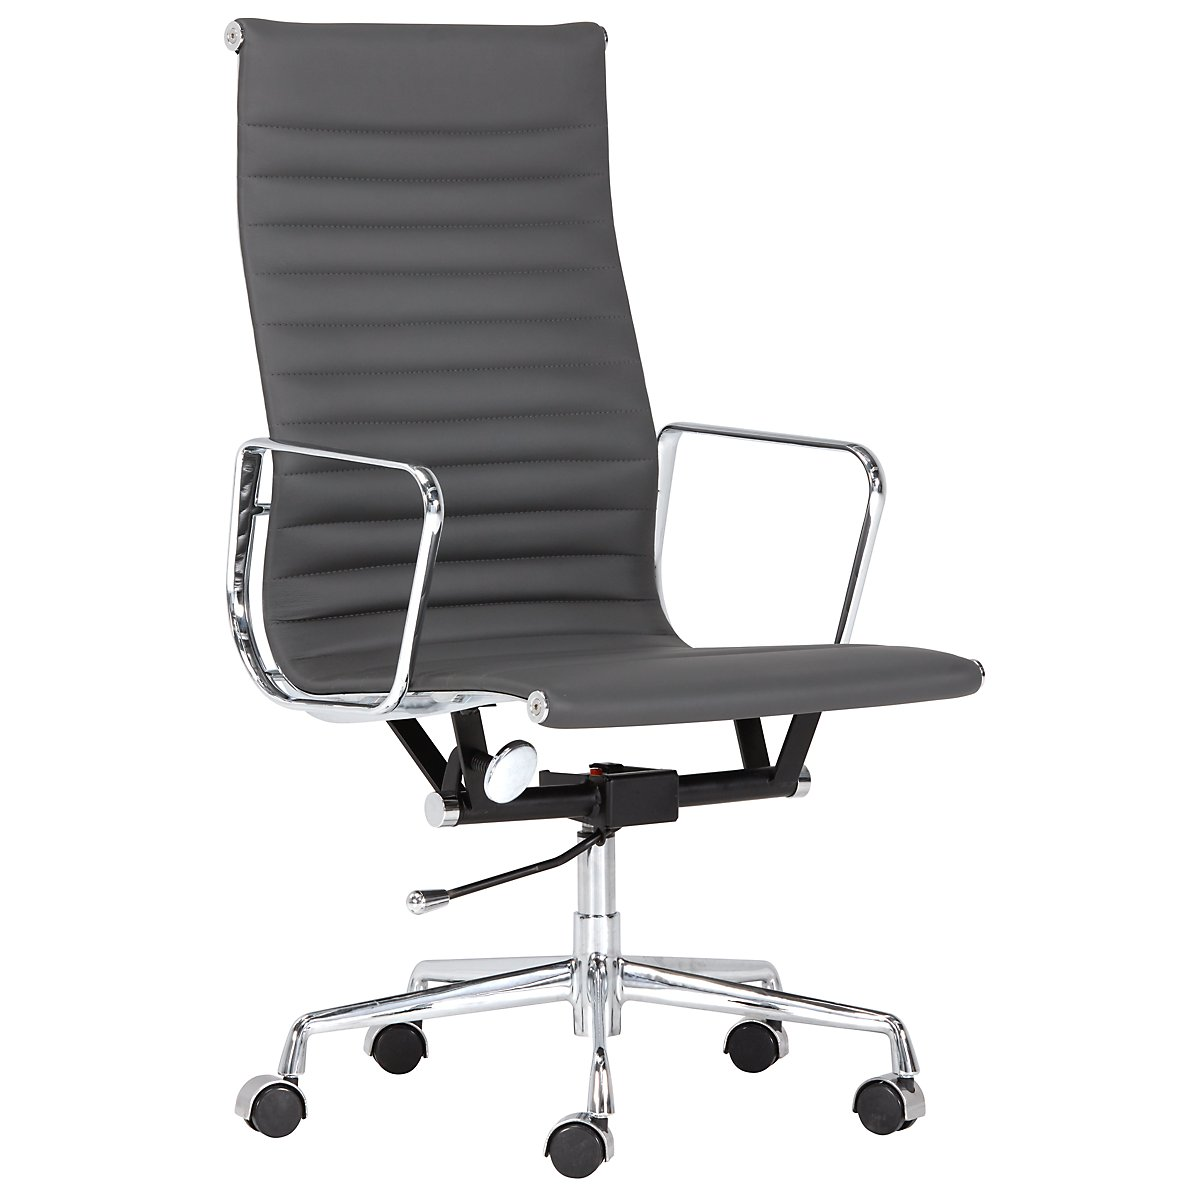 Amos Gray Desk Chair